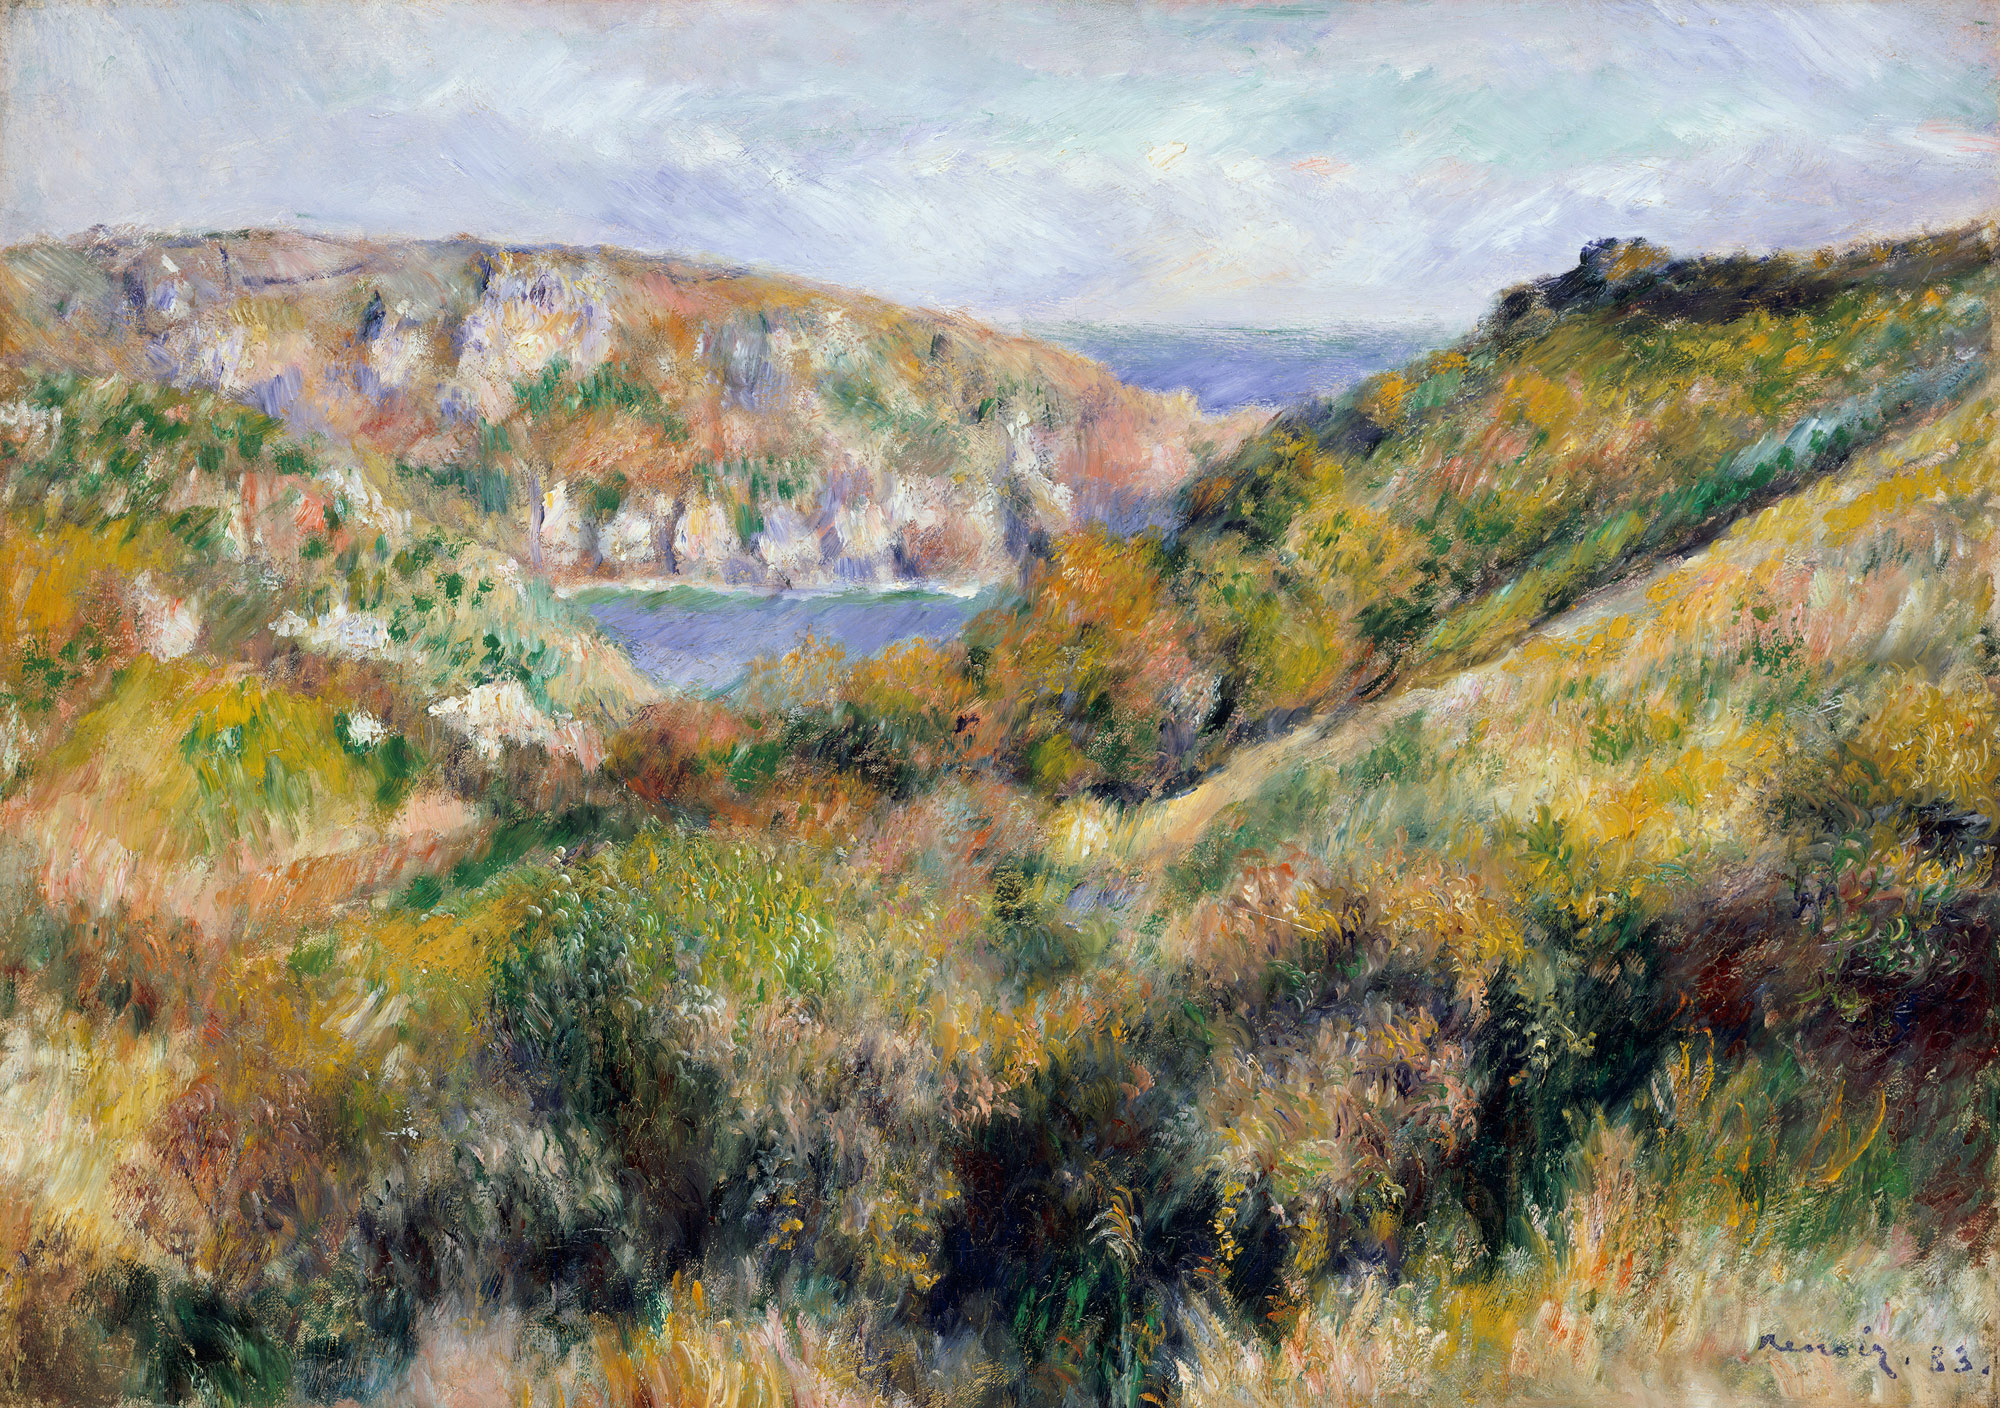 e renoir essay heilbrunn timeline of art hills around the bay of moulin huet